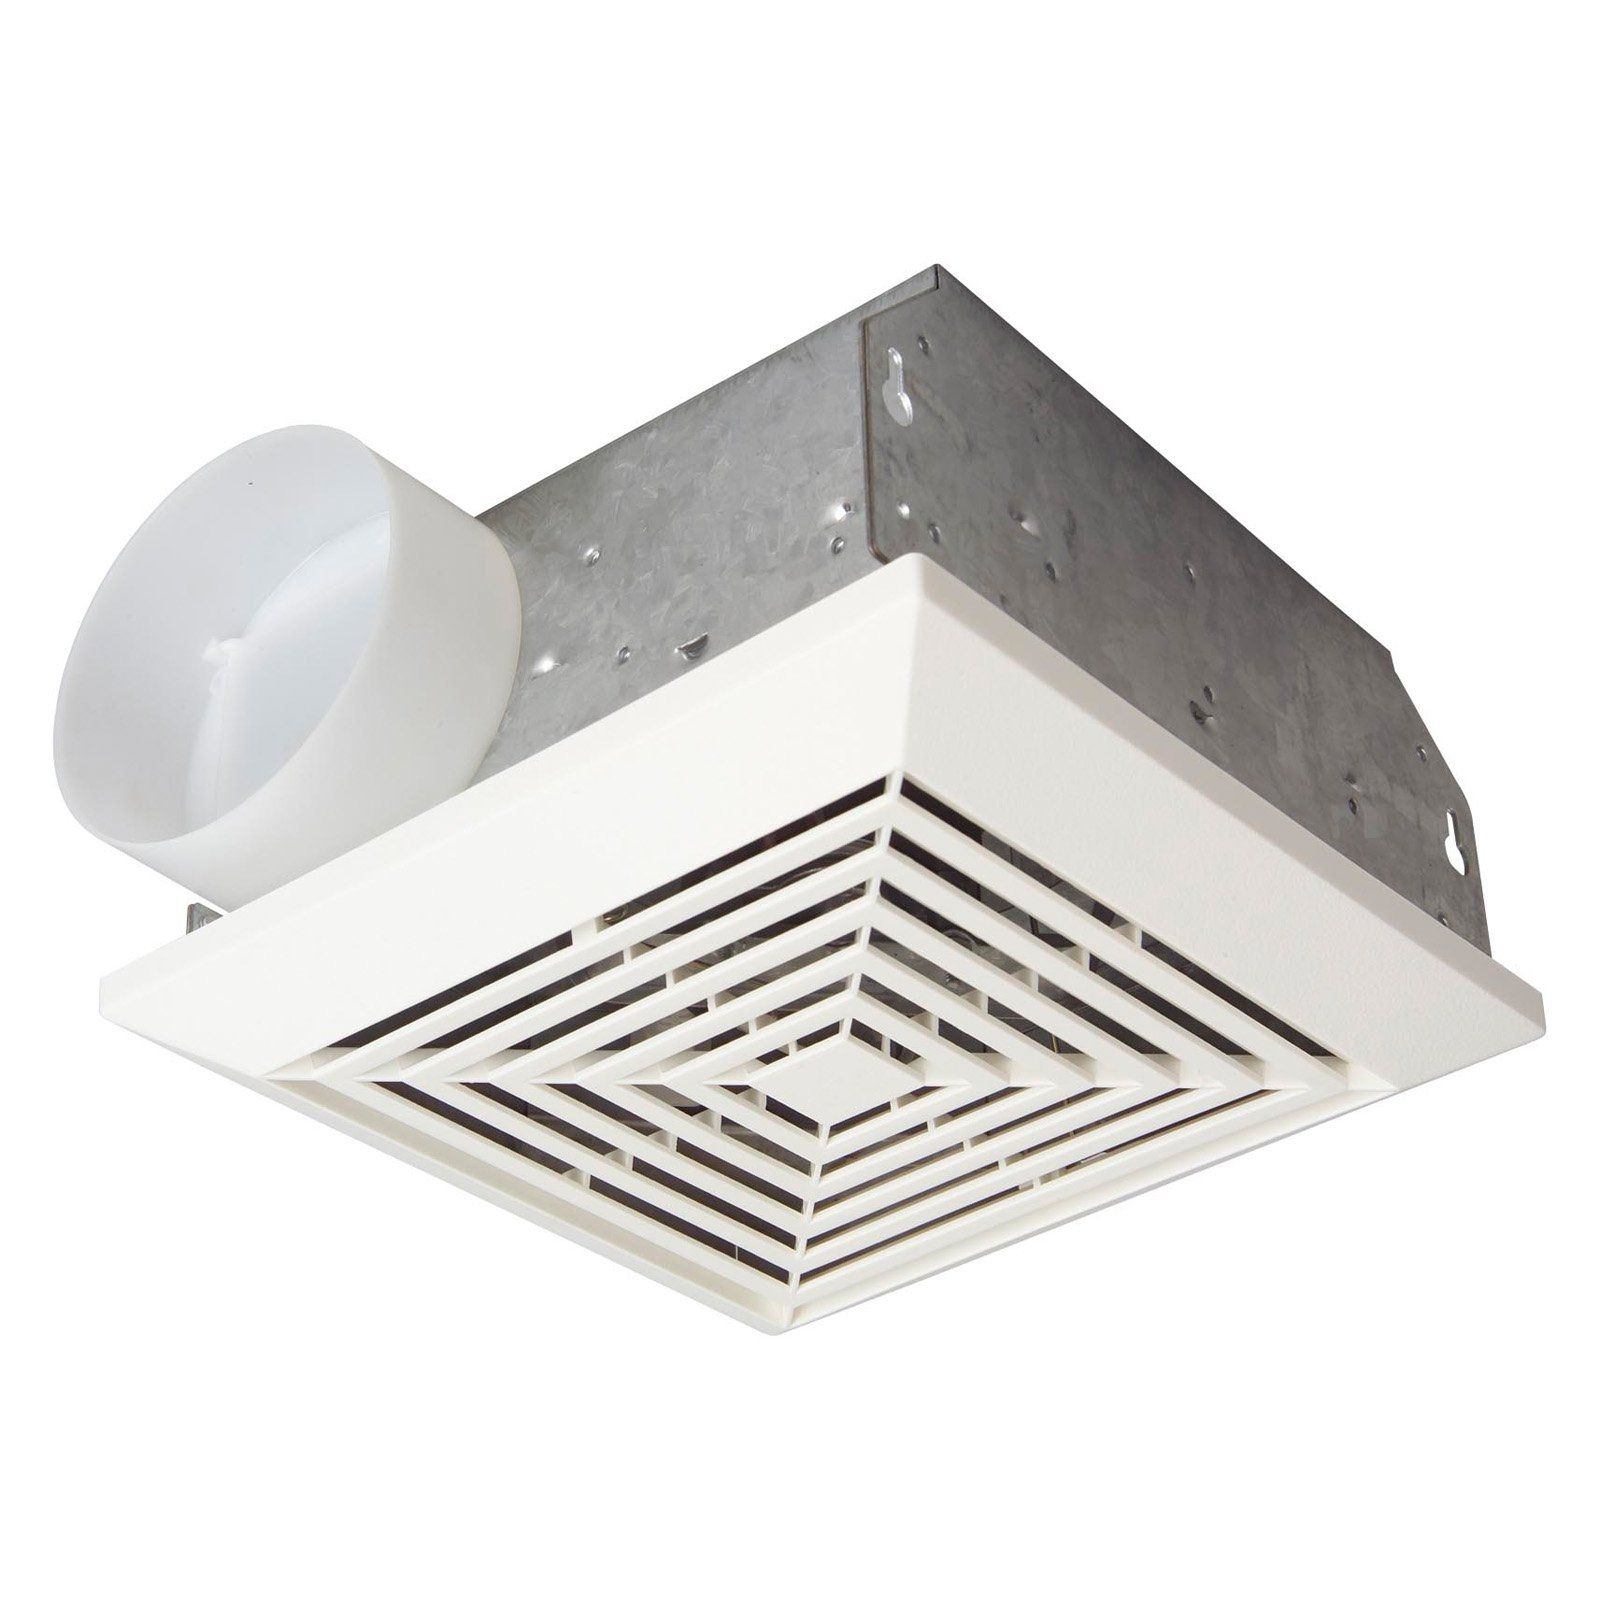 Exhaust Fan For Suspended Ceiling